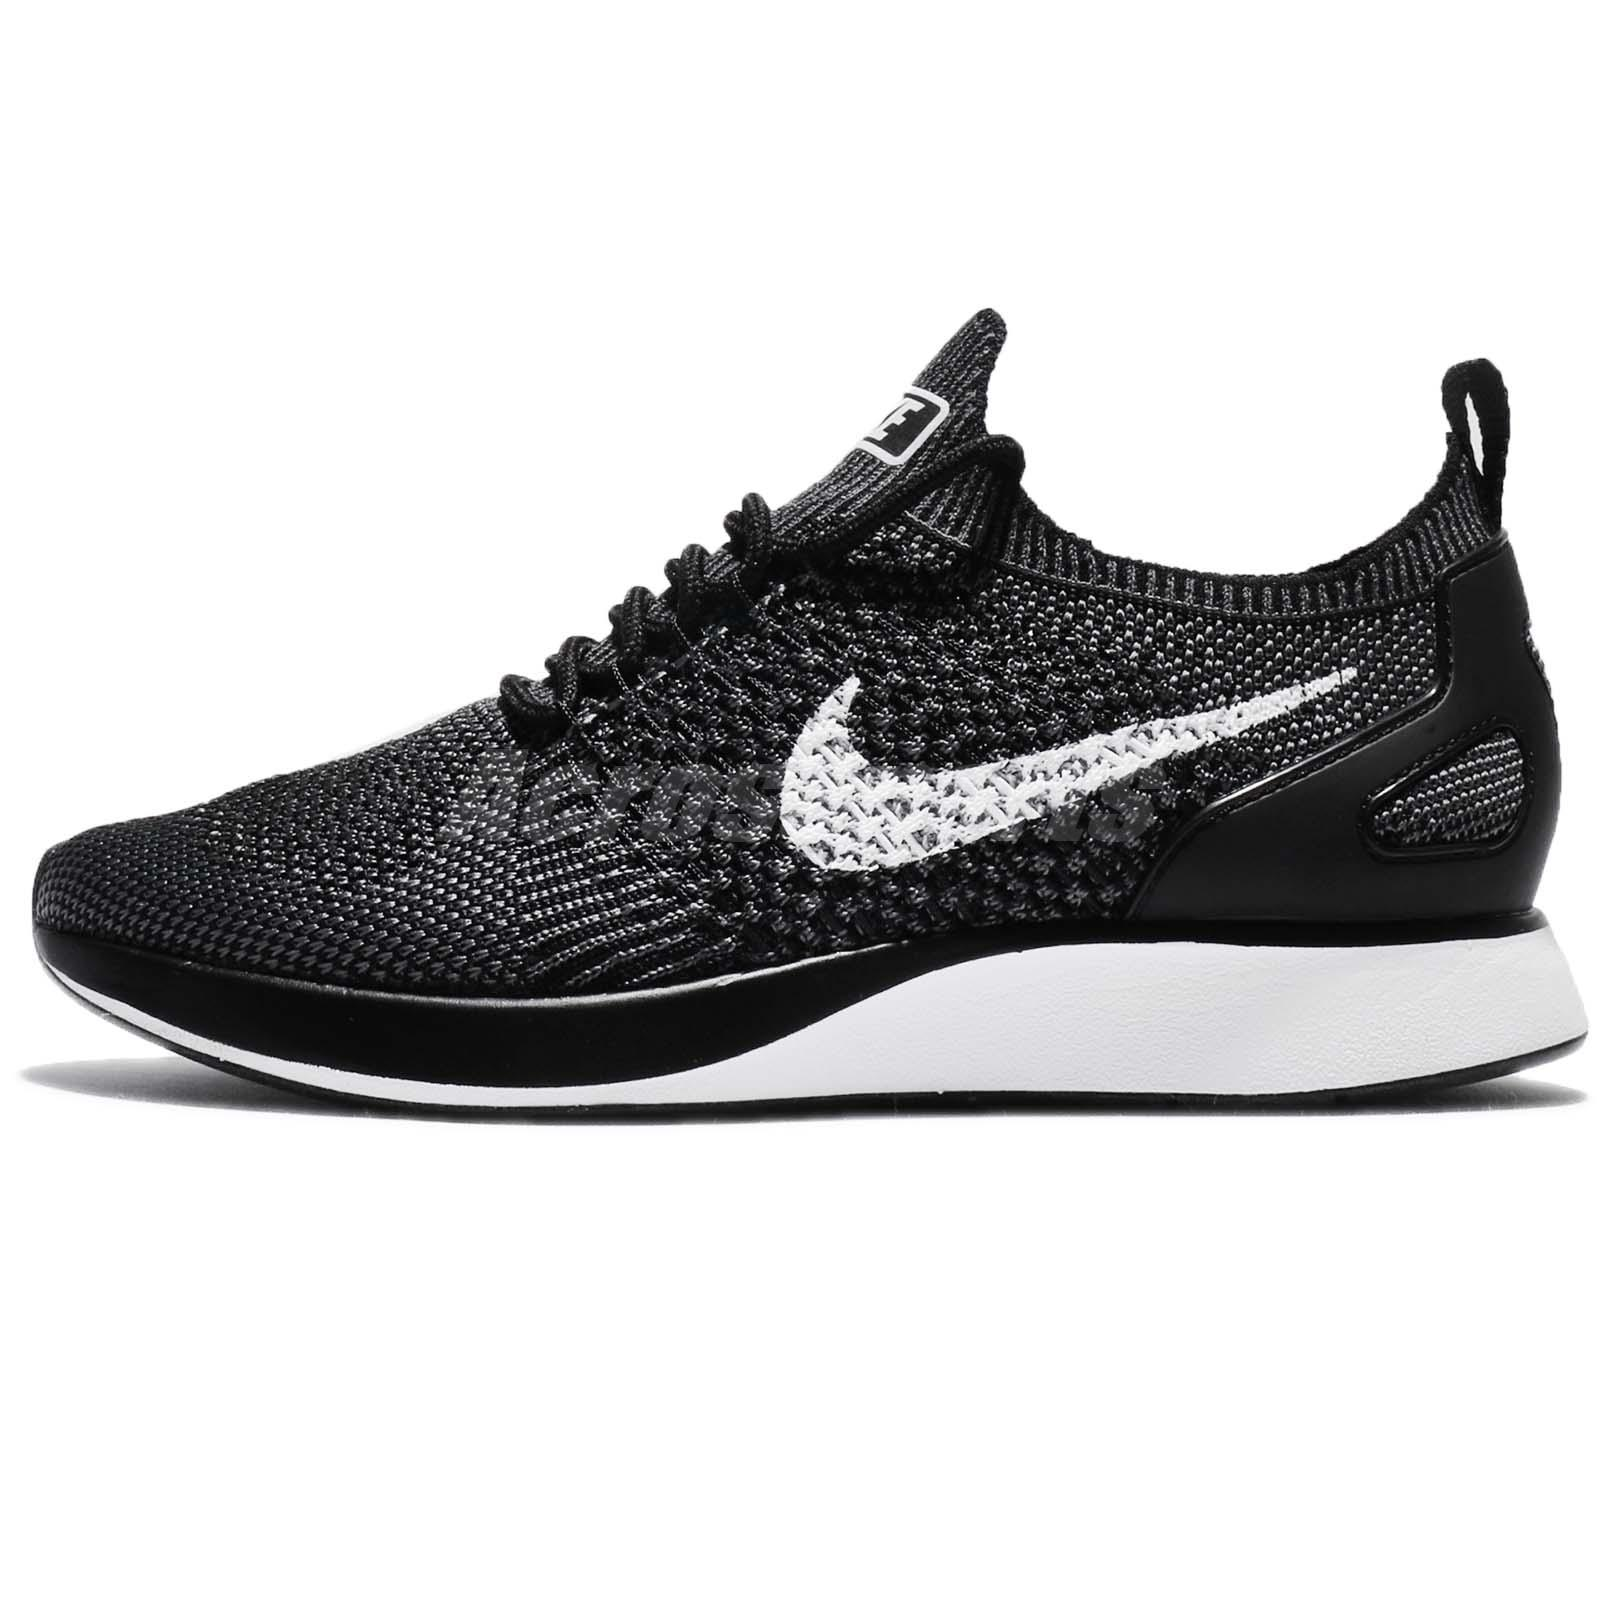 d651347bfb5 Details about Nike Air Zoom Mariah FK Racer PRM Flyknit Womens Running  Shoes 917658-002